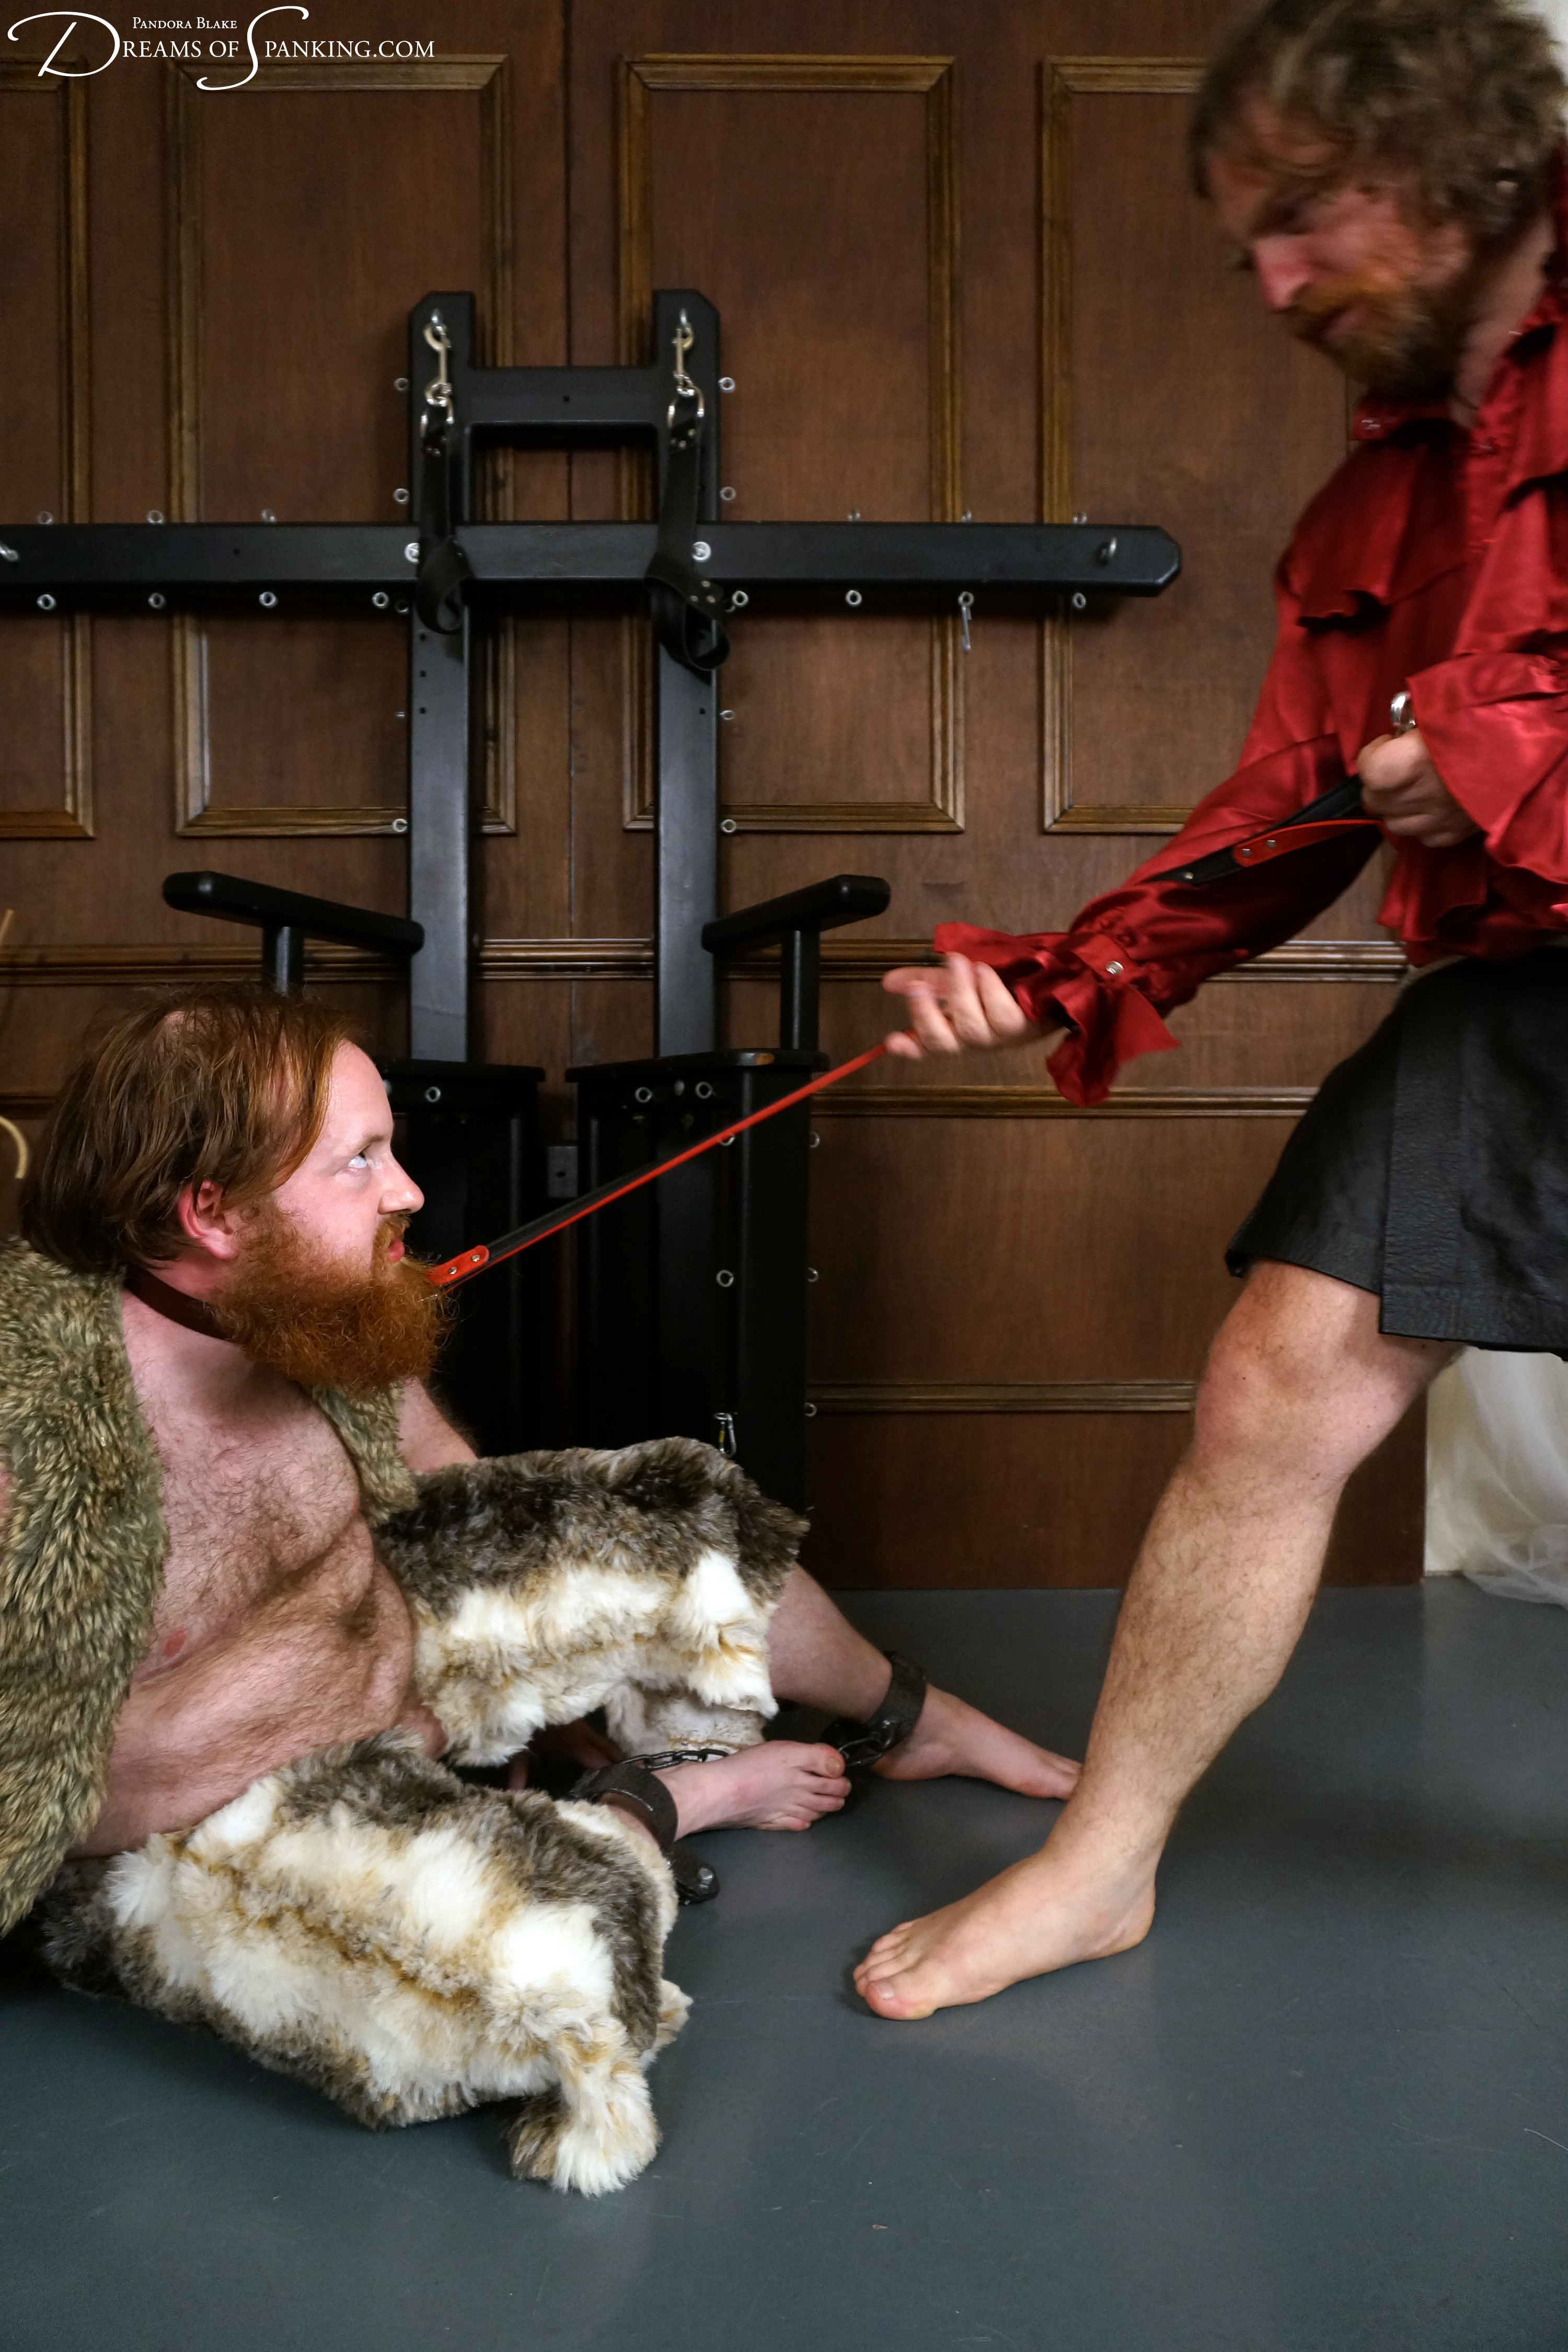 The Beastmaster - Ron Beastly and Seani Love at Dreams of Spanking